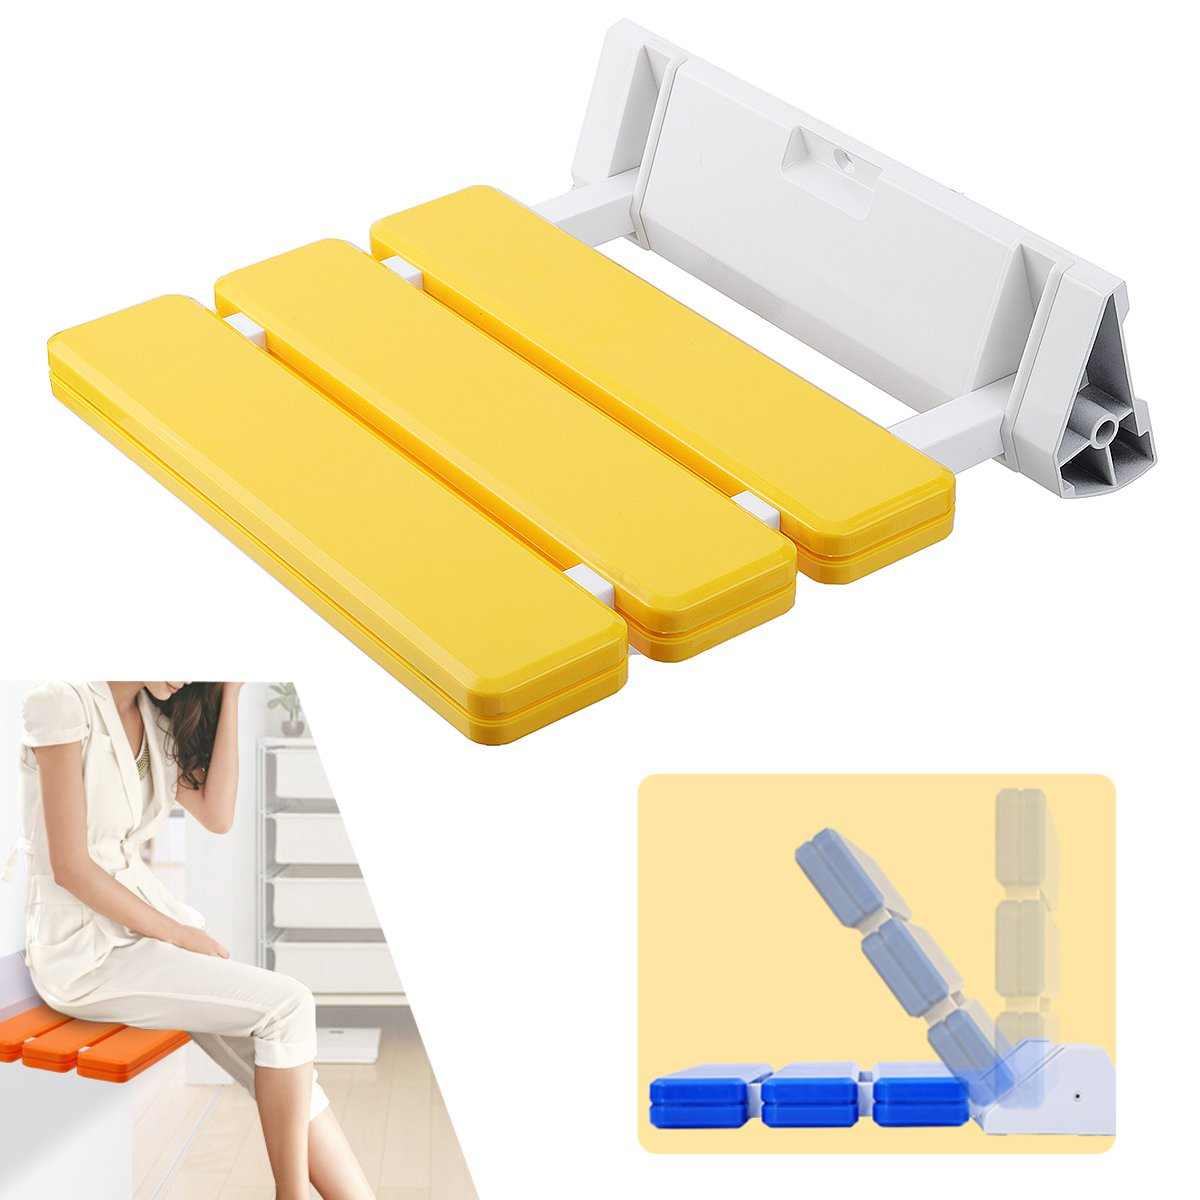 Wall Mounted Shower Seats Bathroom Fixtures Folding Bathroom Wall Mounted Shower Seat Chair Steel Foldaway Elderly Disabled Mobility Safety Aid Solid Spa Stool Fixture Non-Ironing